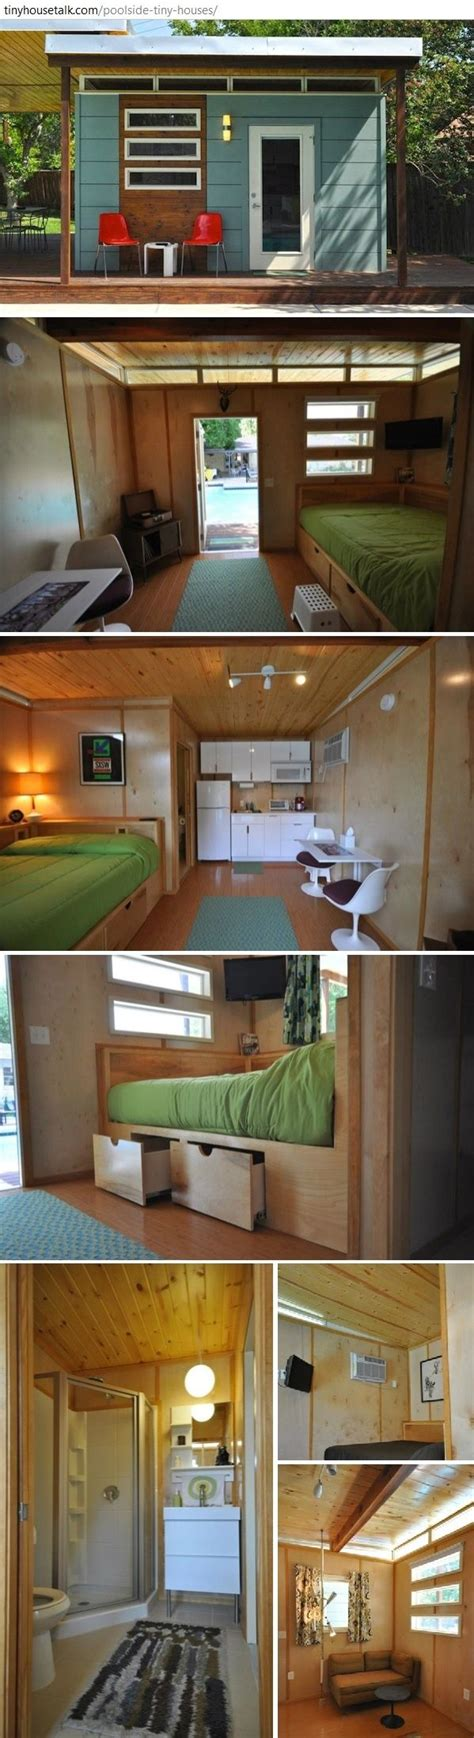 pin by mrs tiddleywinks on tiny homes pinterest tiny house tiny house pinterest コンテナ ハウス コンテナ サロン